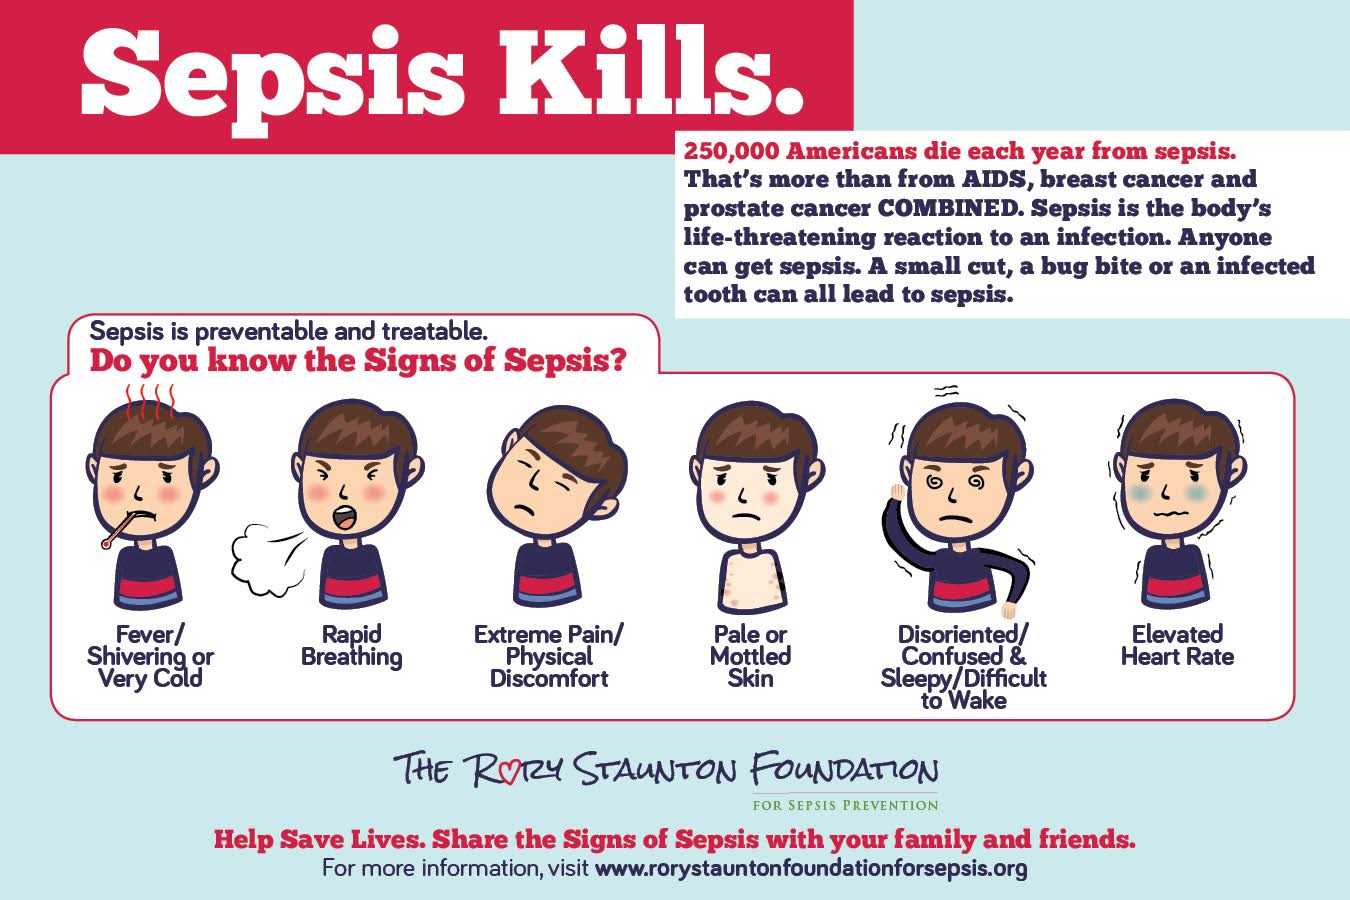 Rory Staunton Foundation Signs of Sepsis Infographic